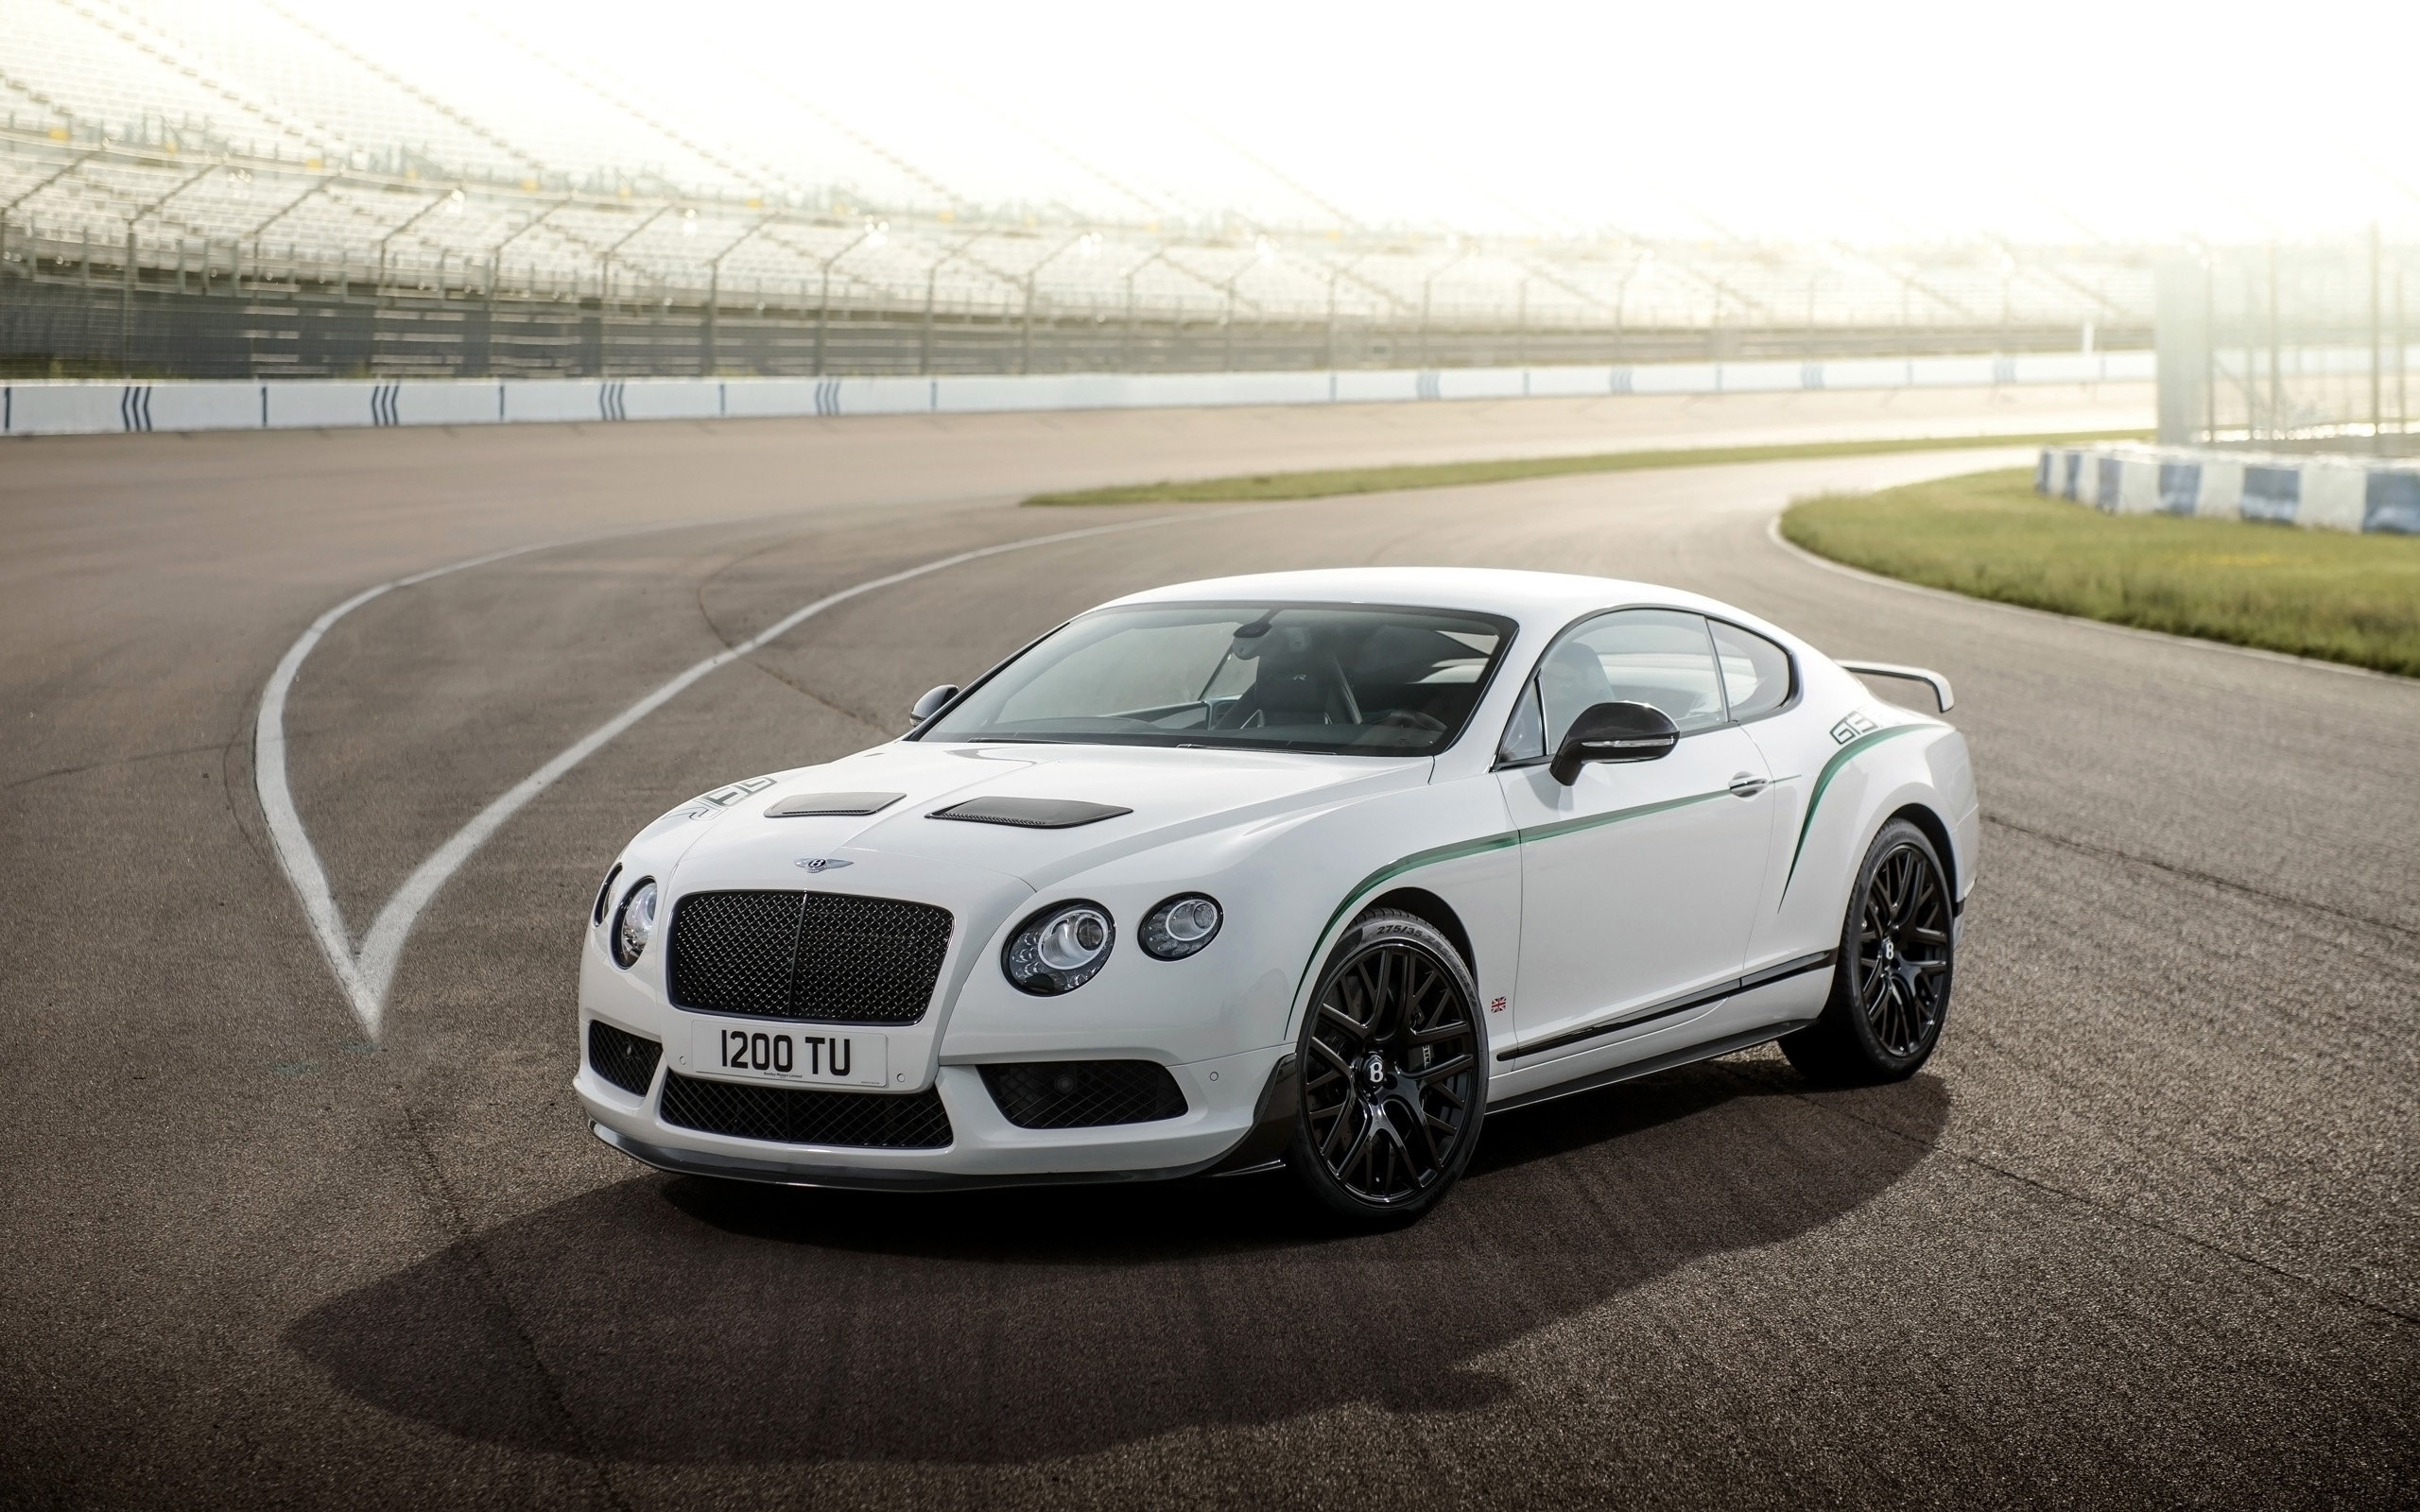 2015 Bentley Continental GT3 R Wallpaper HD Car Wallpapers 2560x1600